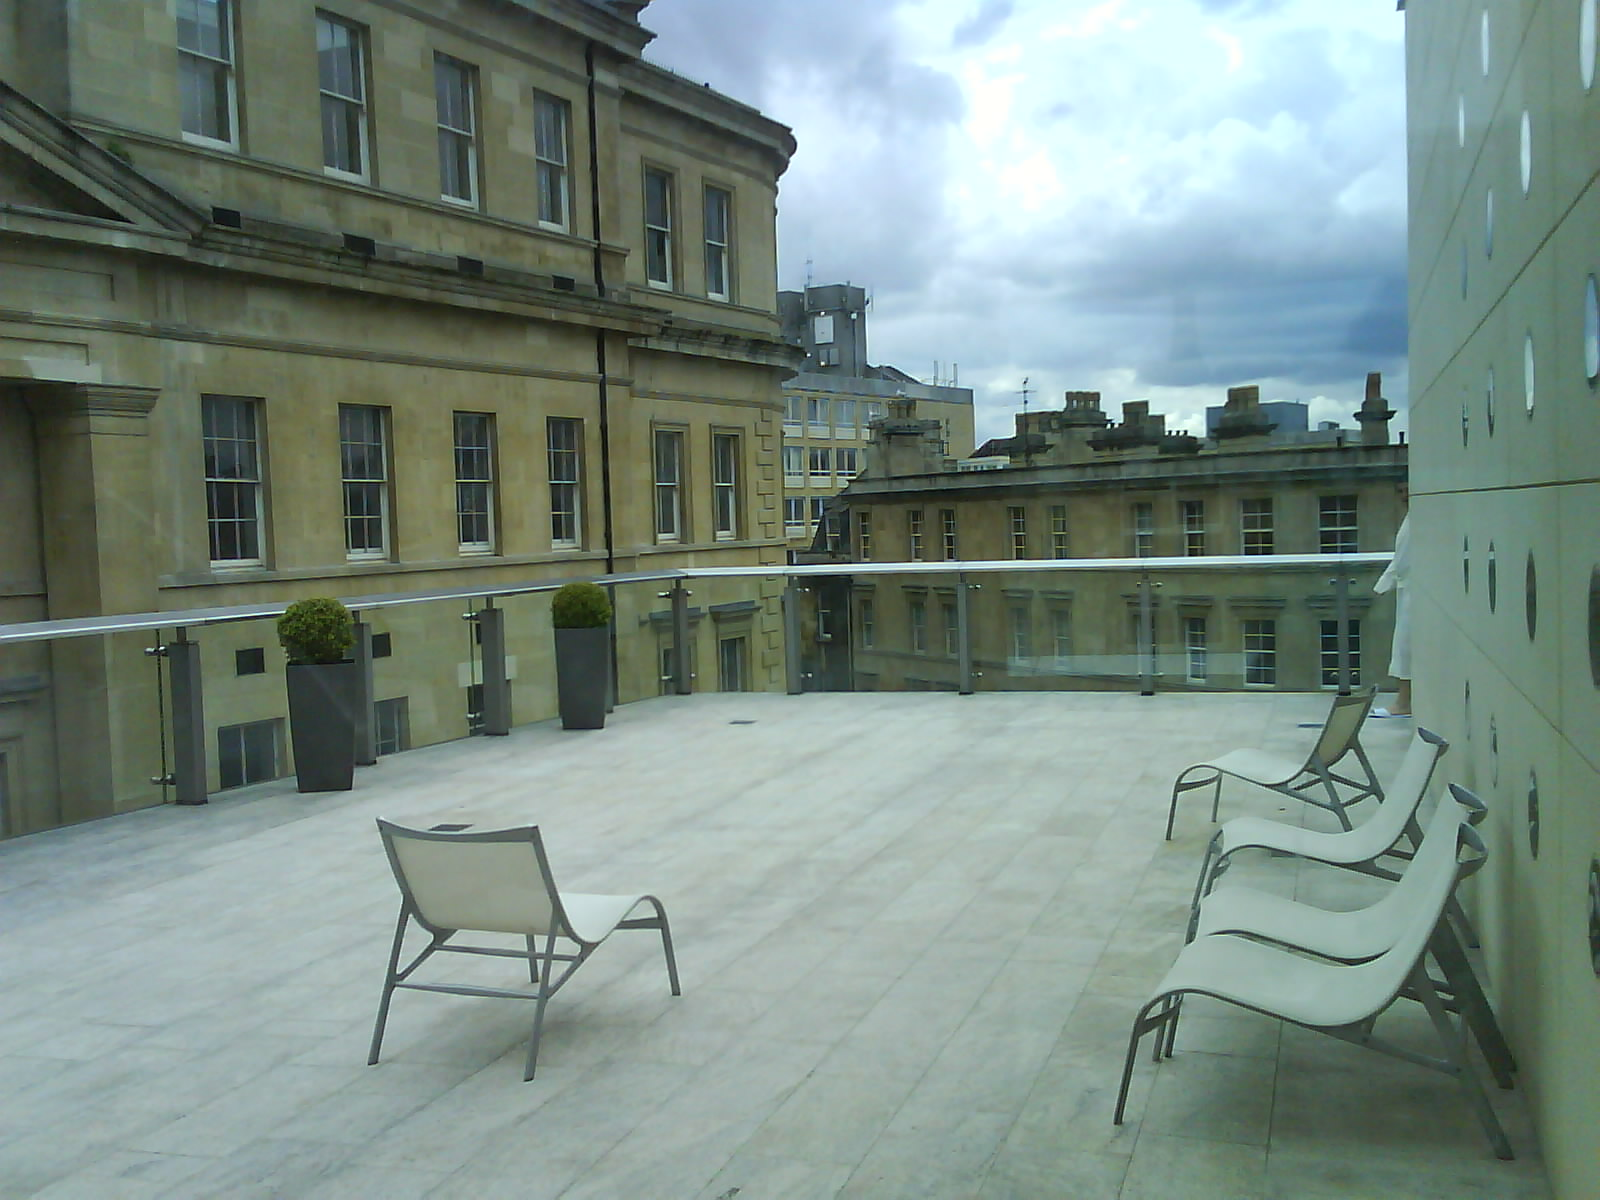 Thermae bath spa public building in bath thousand wonders for St mary redcliffe swimming pool